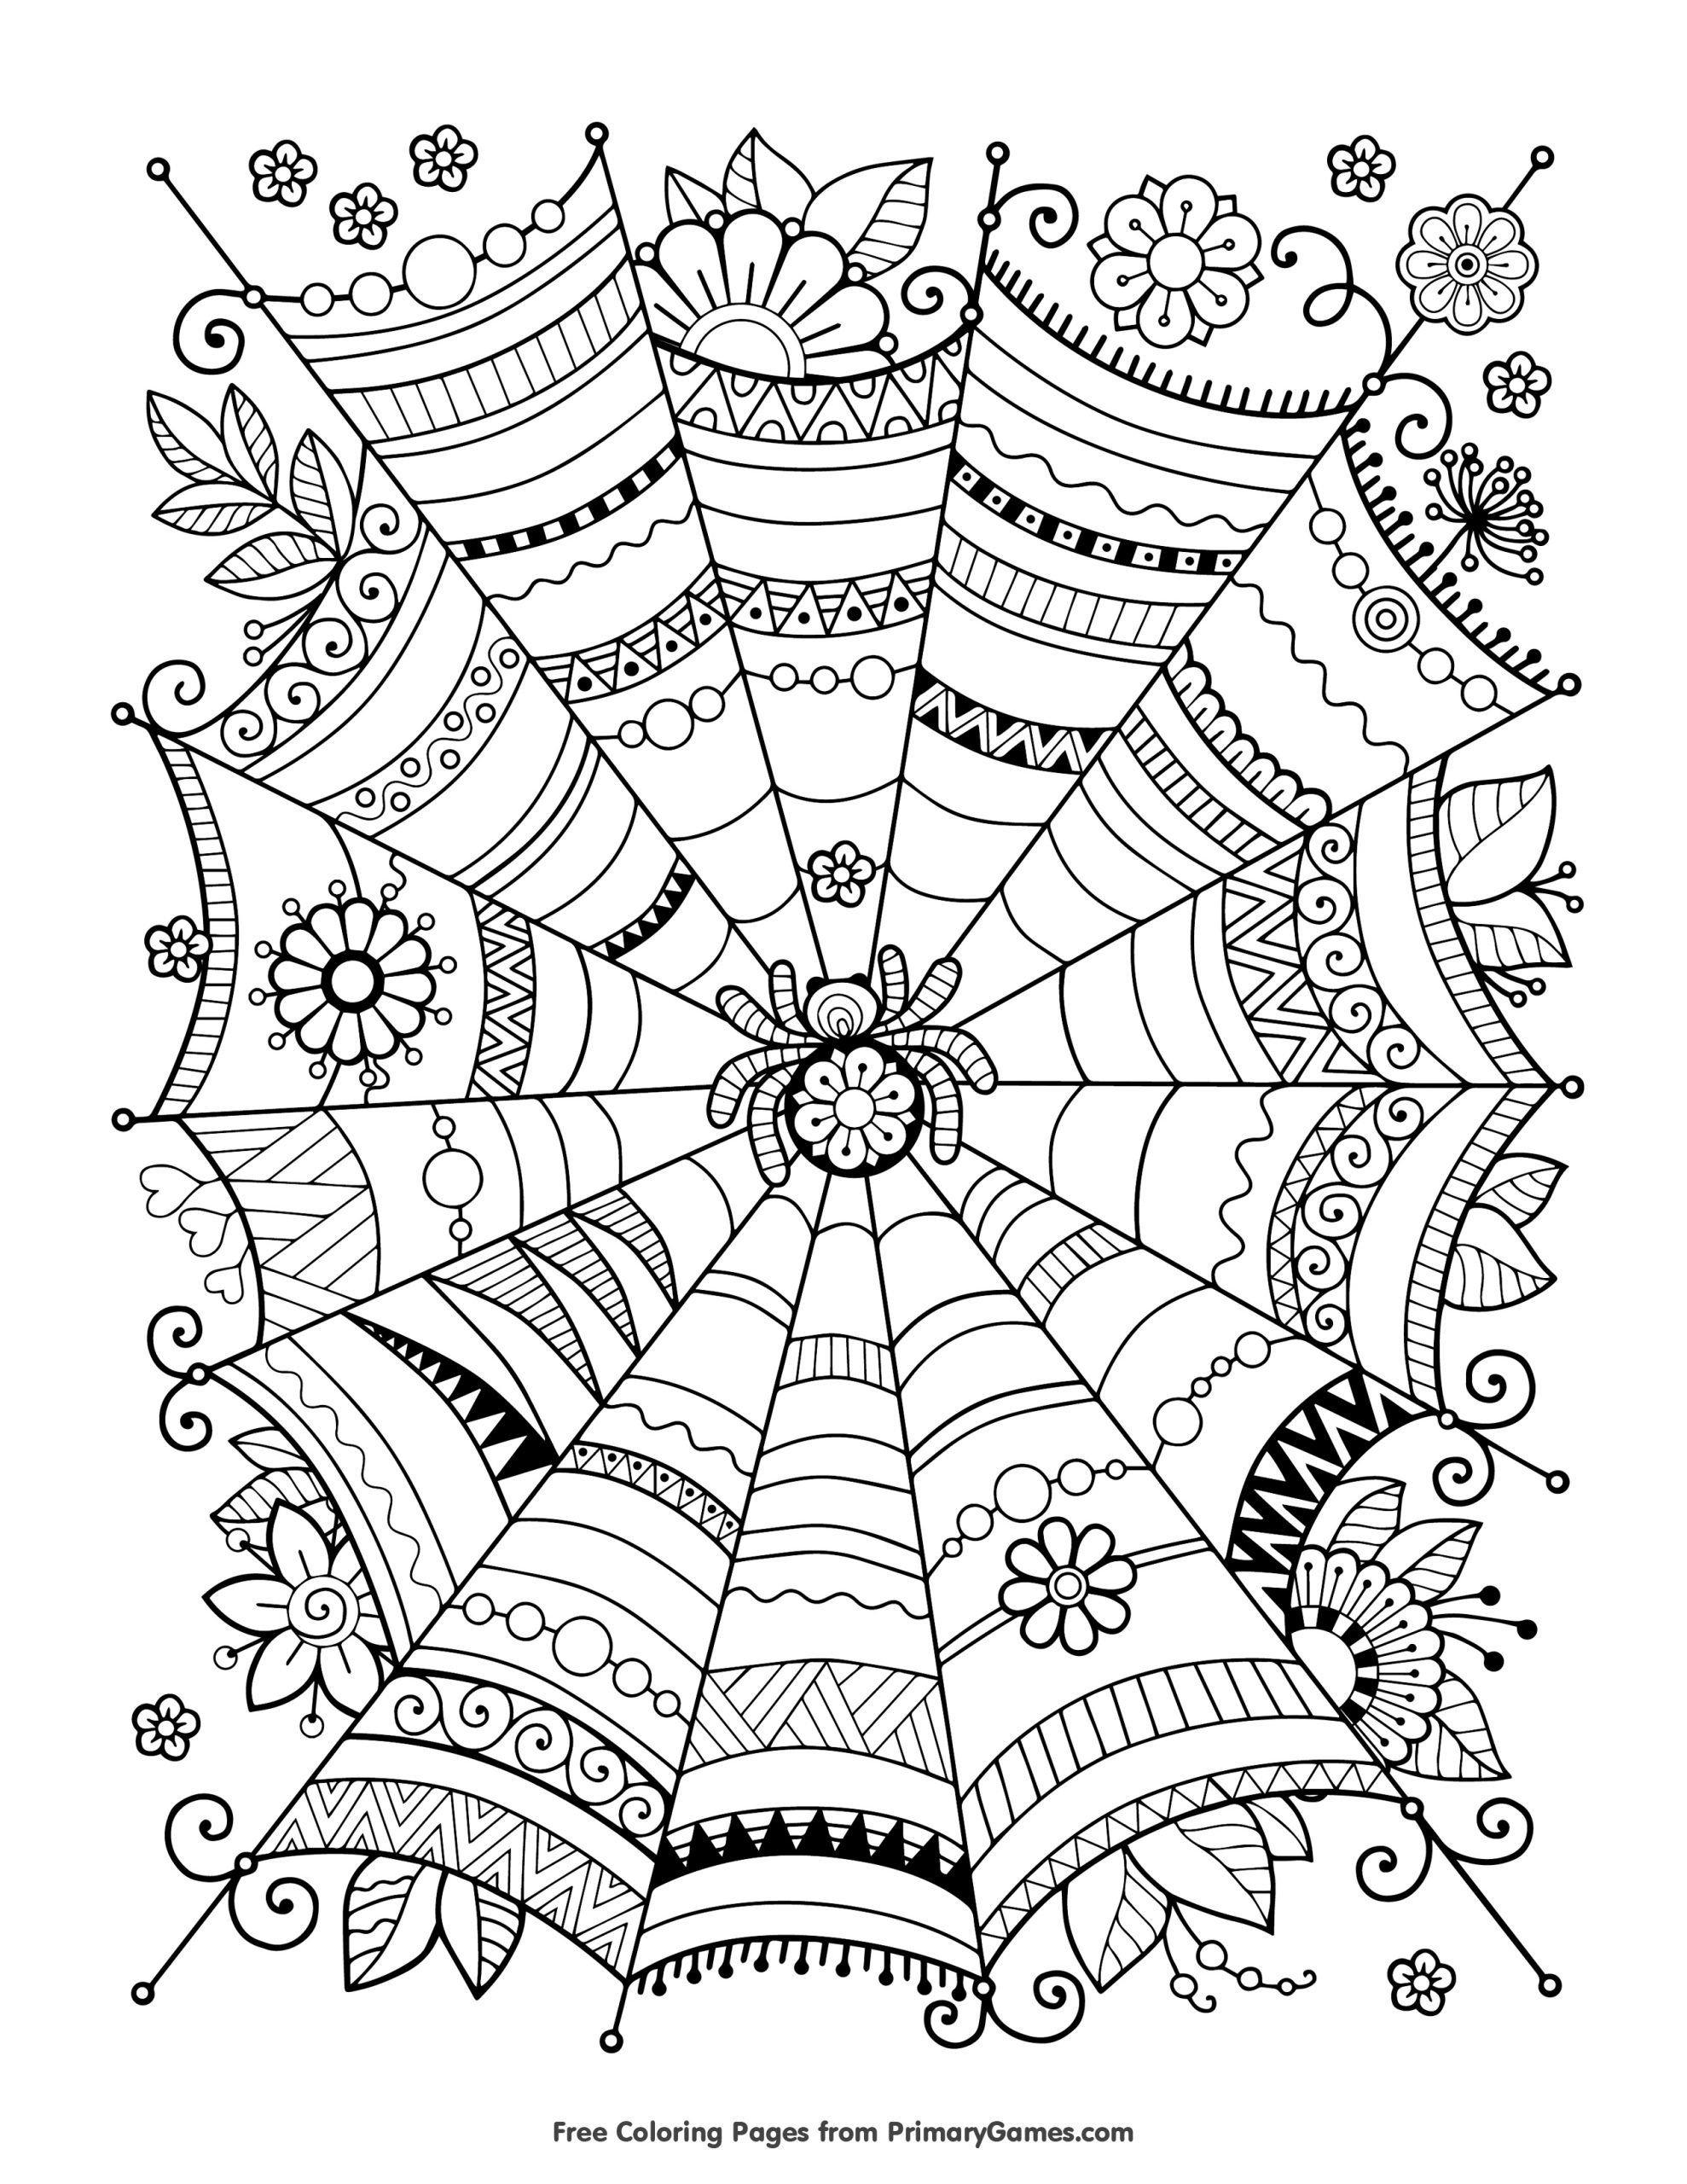 Full Size Printable Halloween Coloring Pages Free For